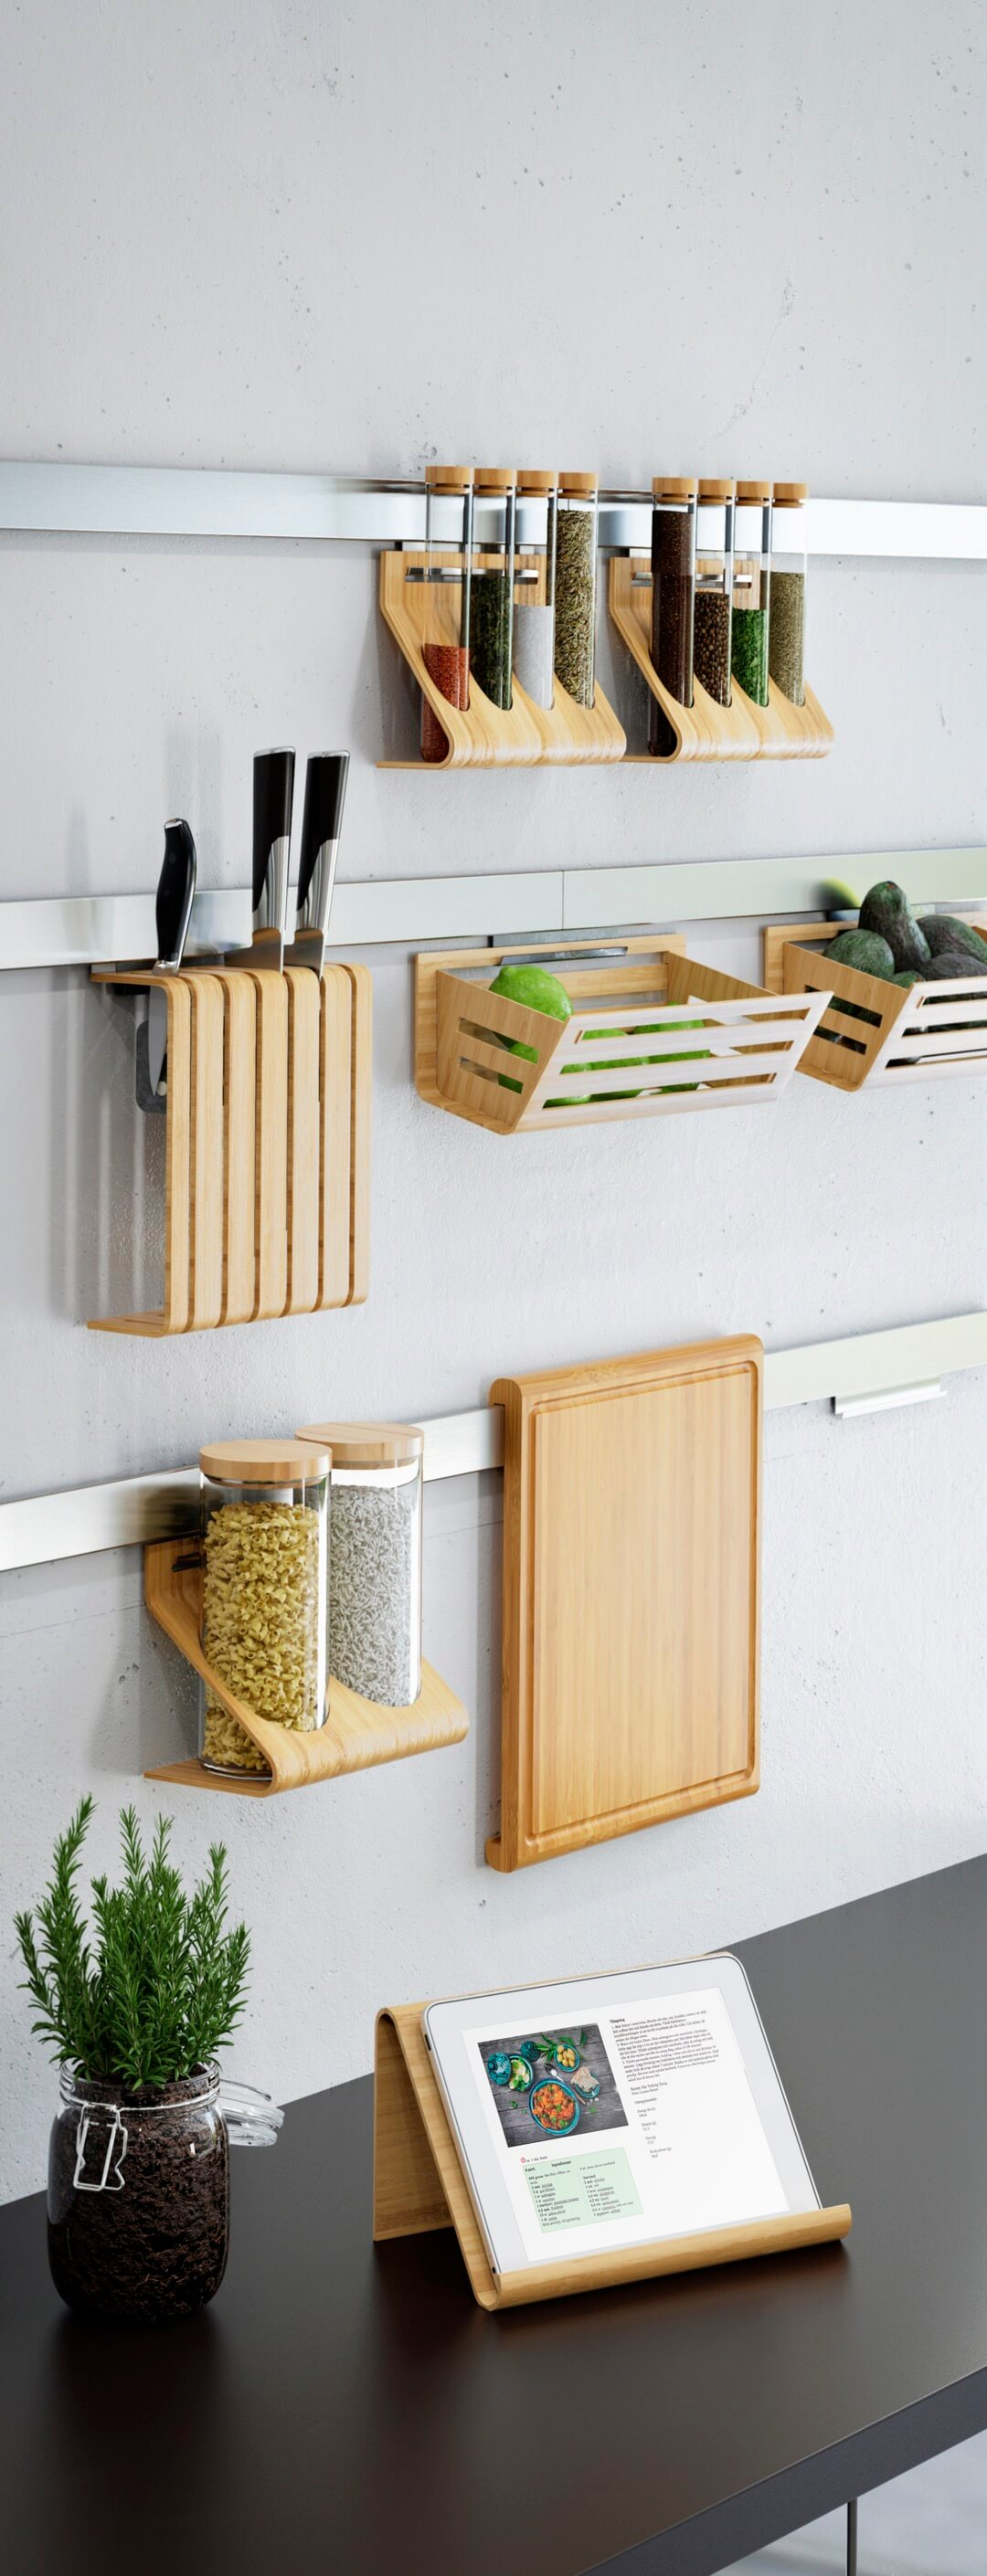 small kitchen storage wall ledges for wooden kitchen accessories OYBPUSE